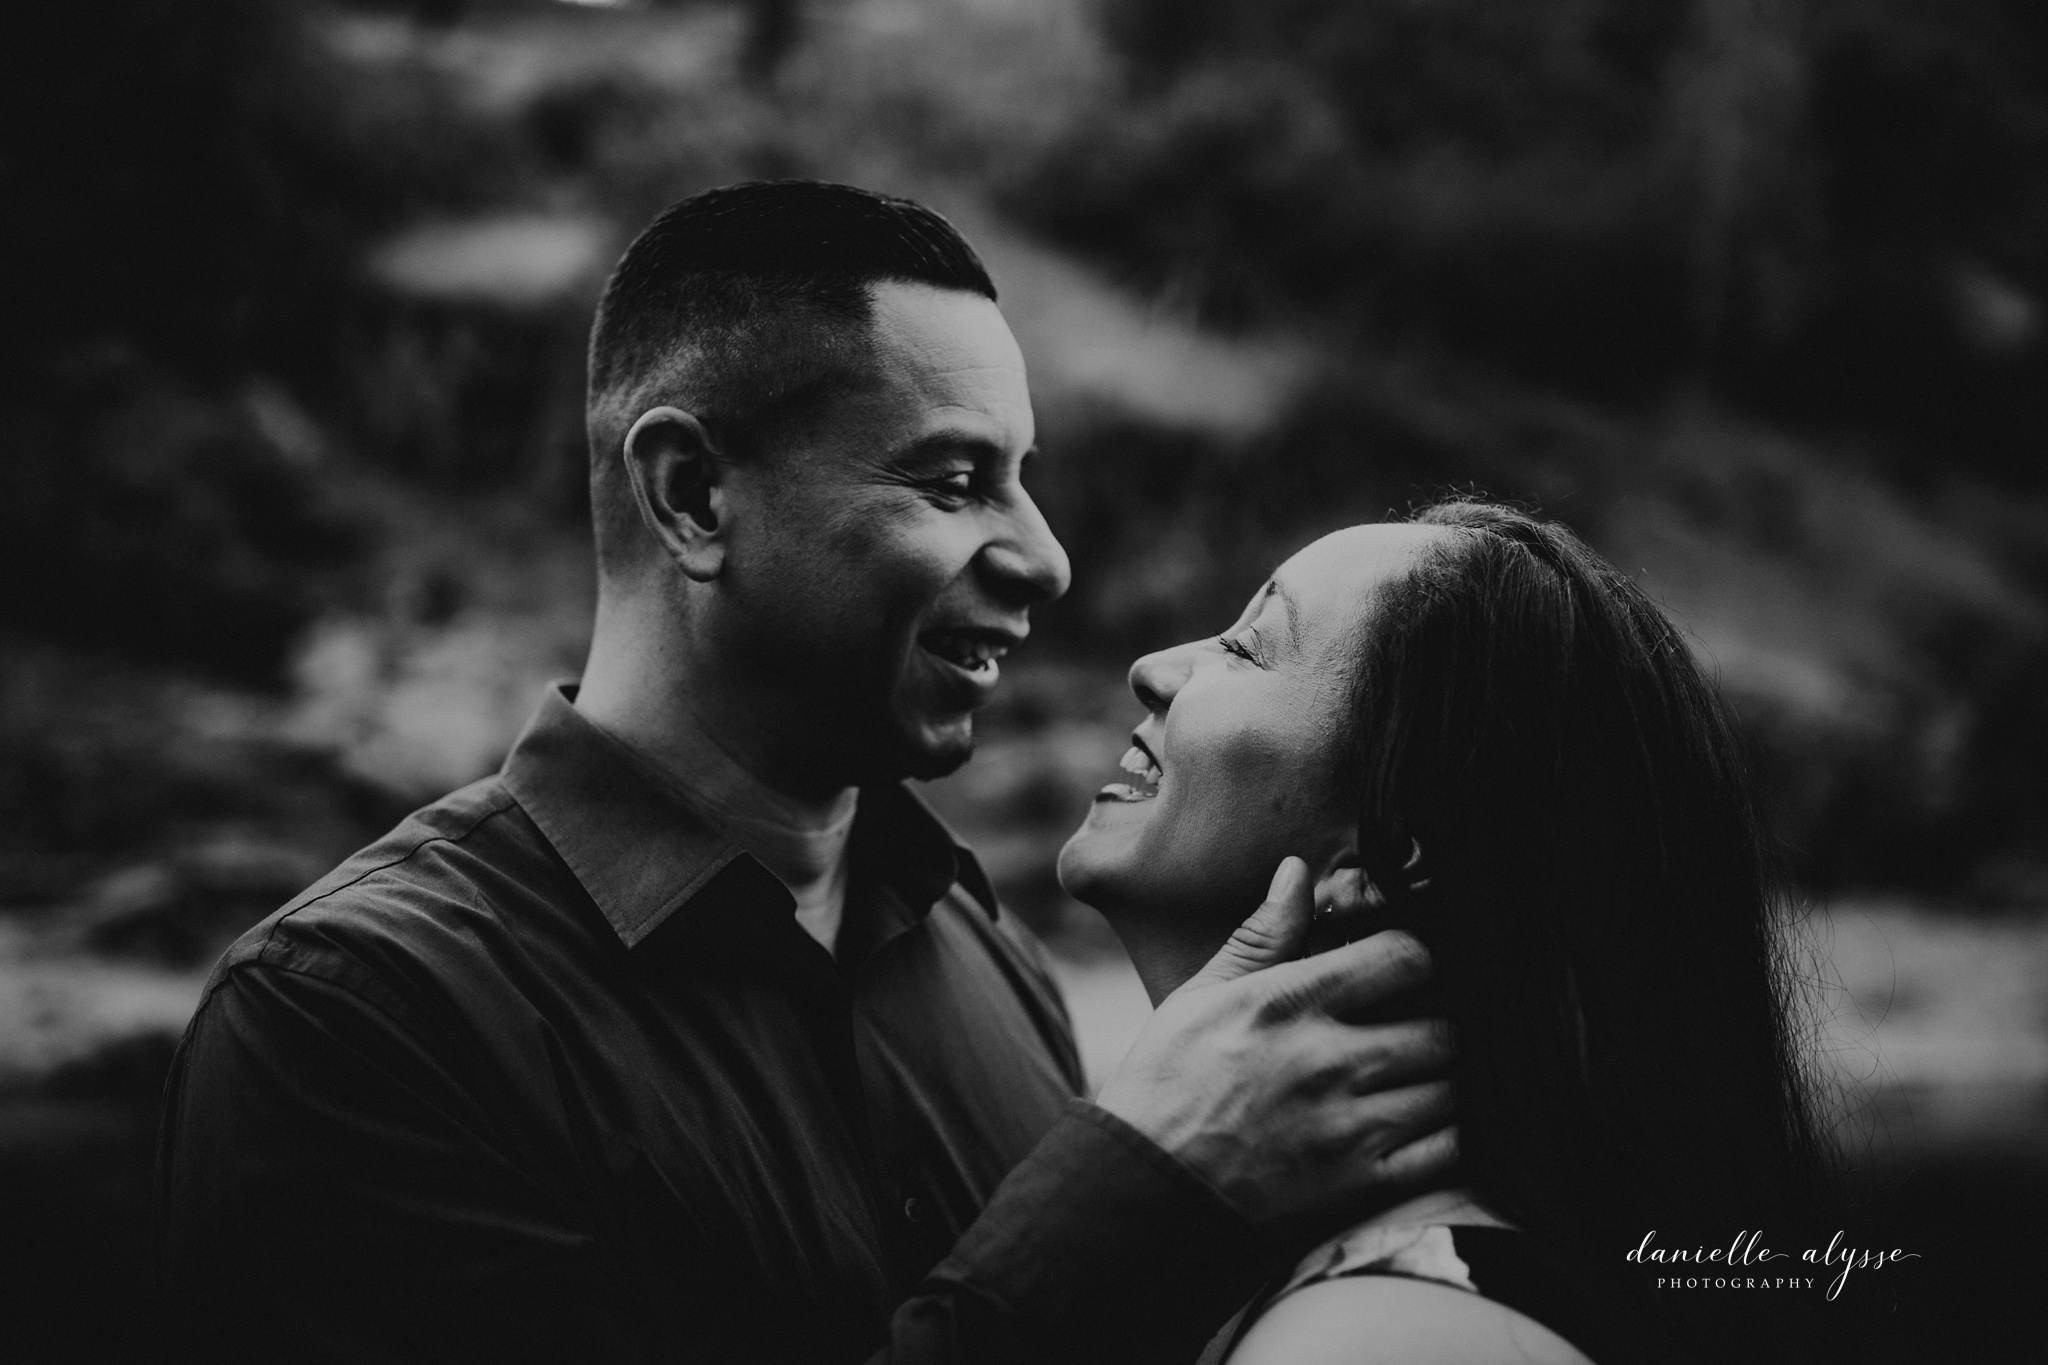 180425_engagement_monica_auburn_water_falls_auburn_danielle_alysse_photography_sacramento_photographer_blog_74_WEB.jpg